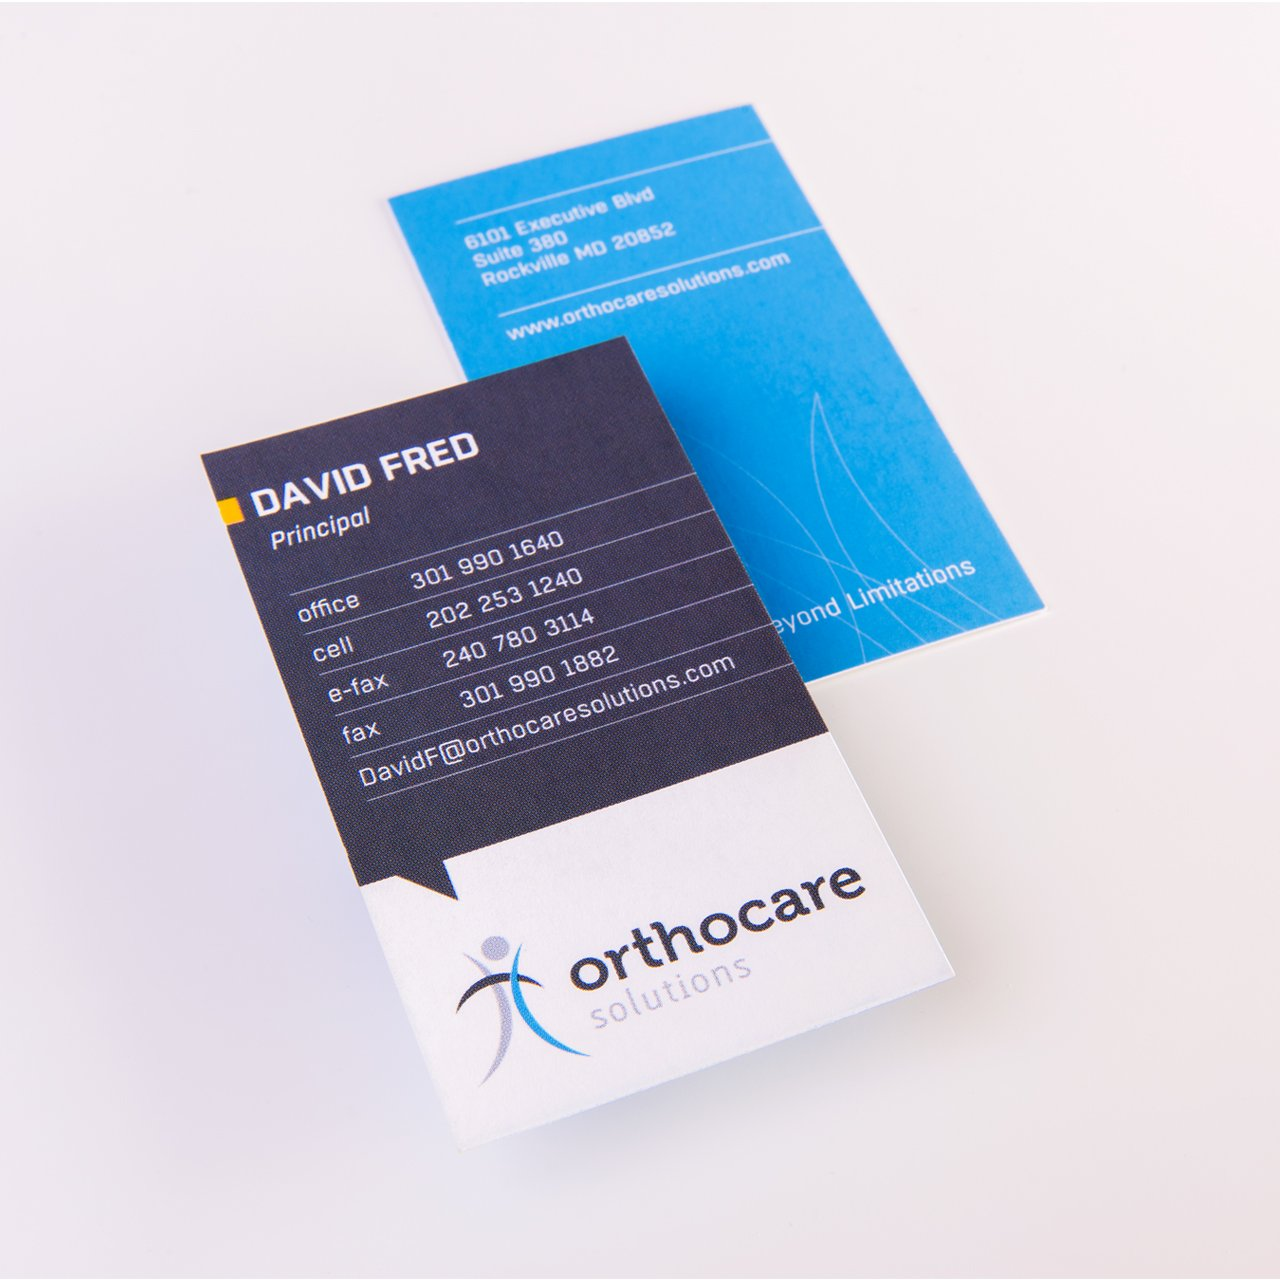 Orthocare Business Cards